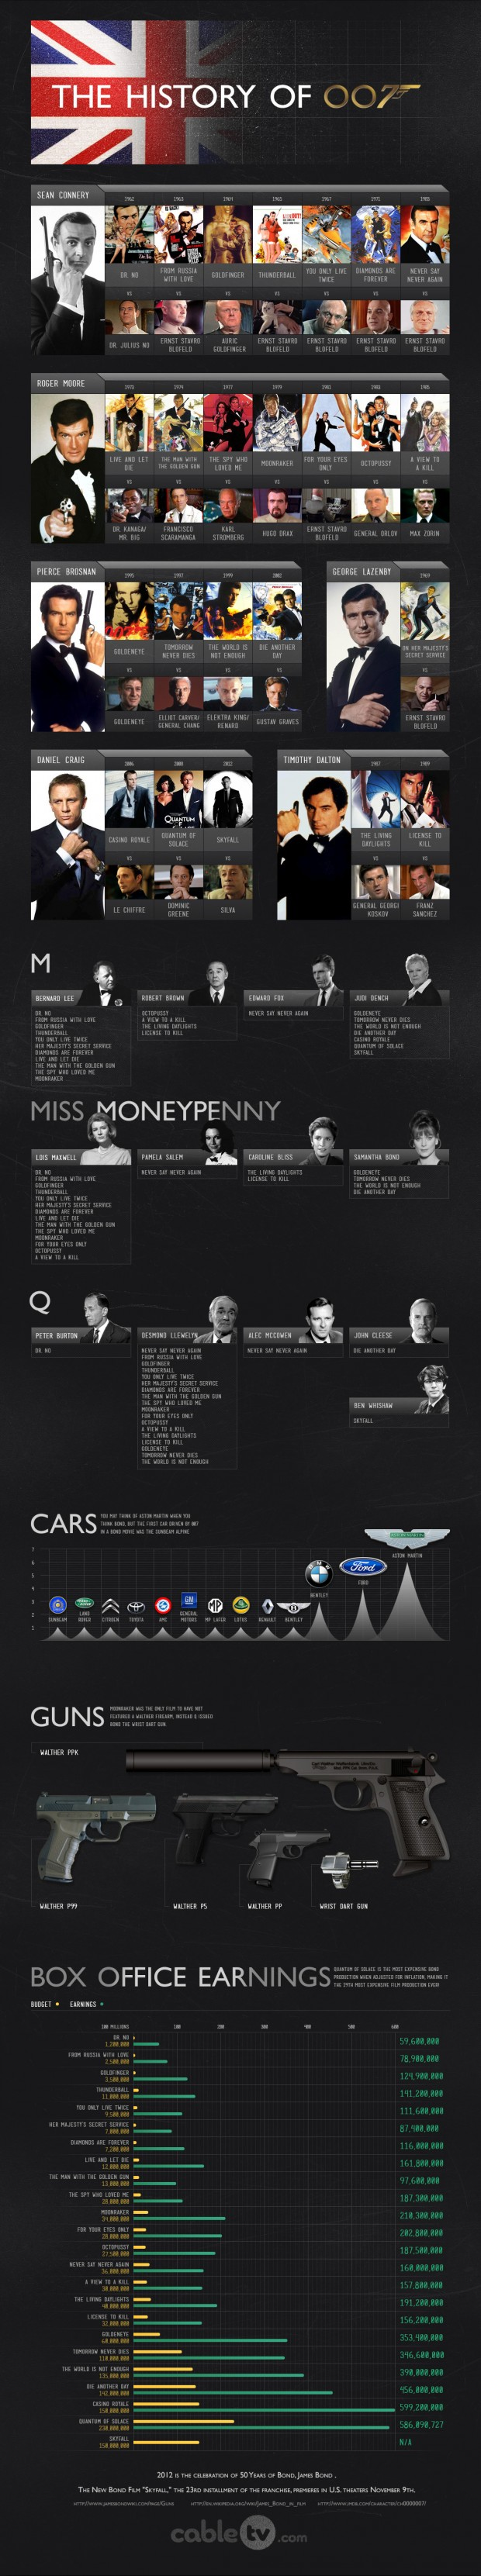 10. The history of James Bond, 007